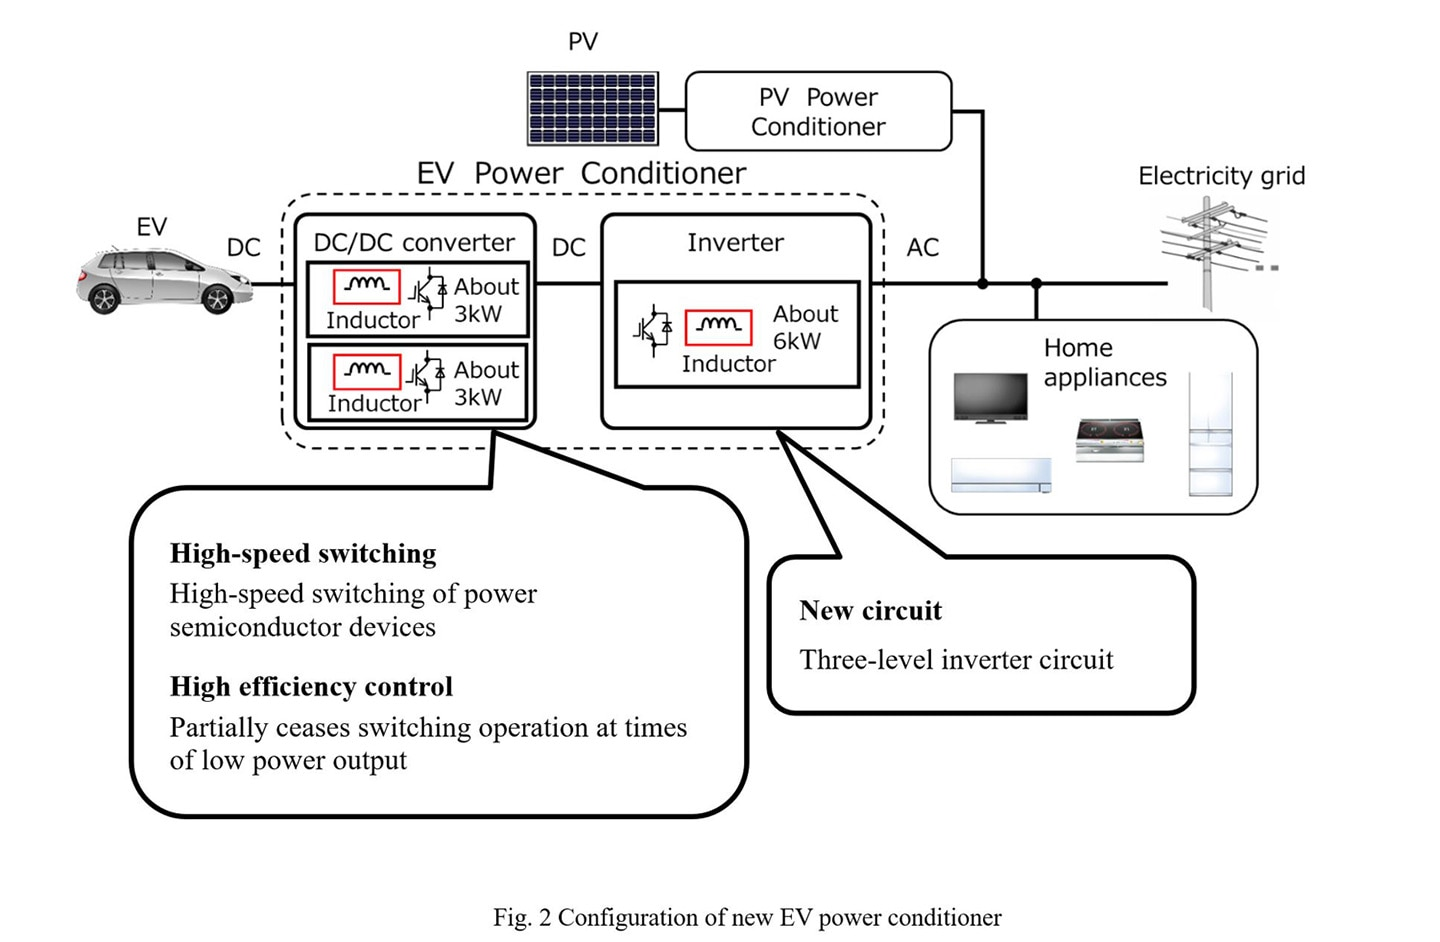 Fig. 2 Configuration of new EV power conditioner